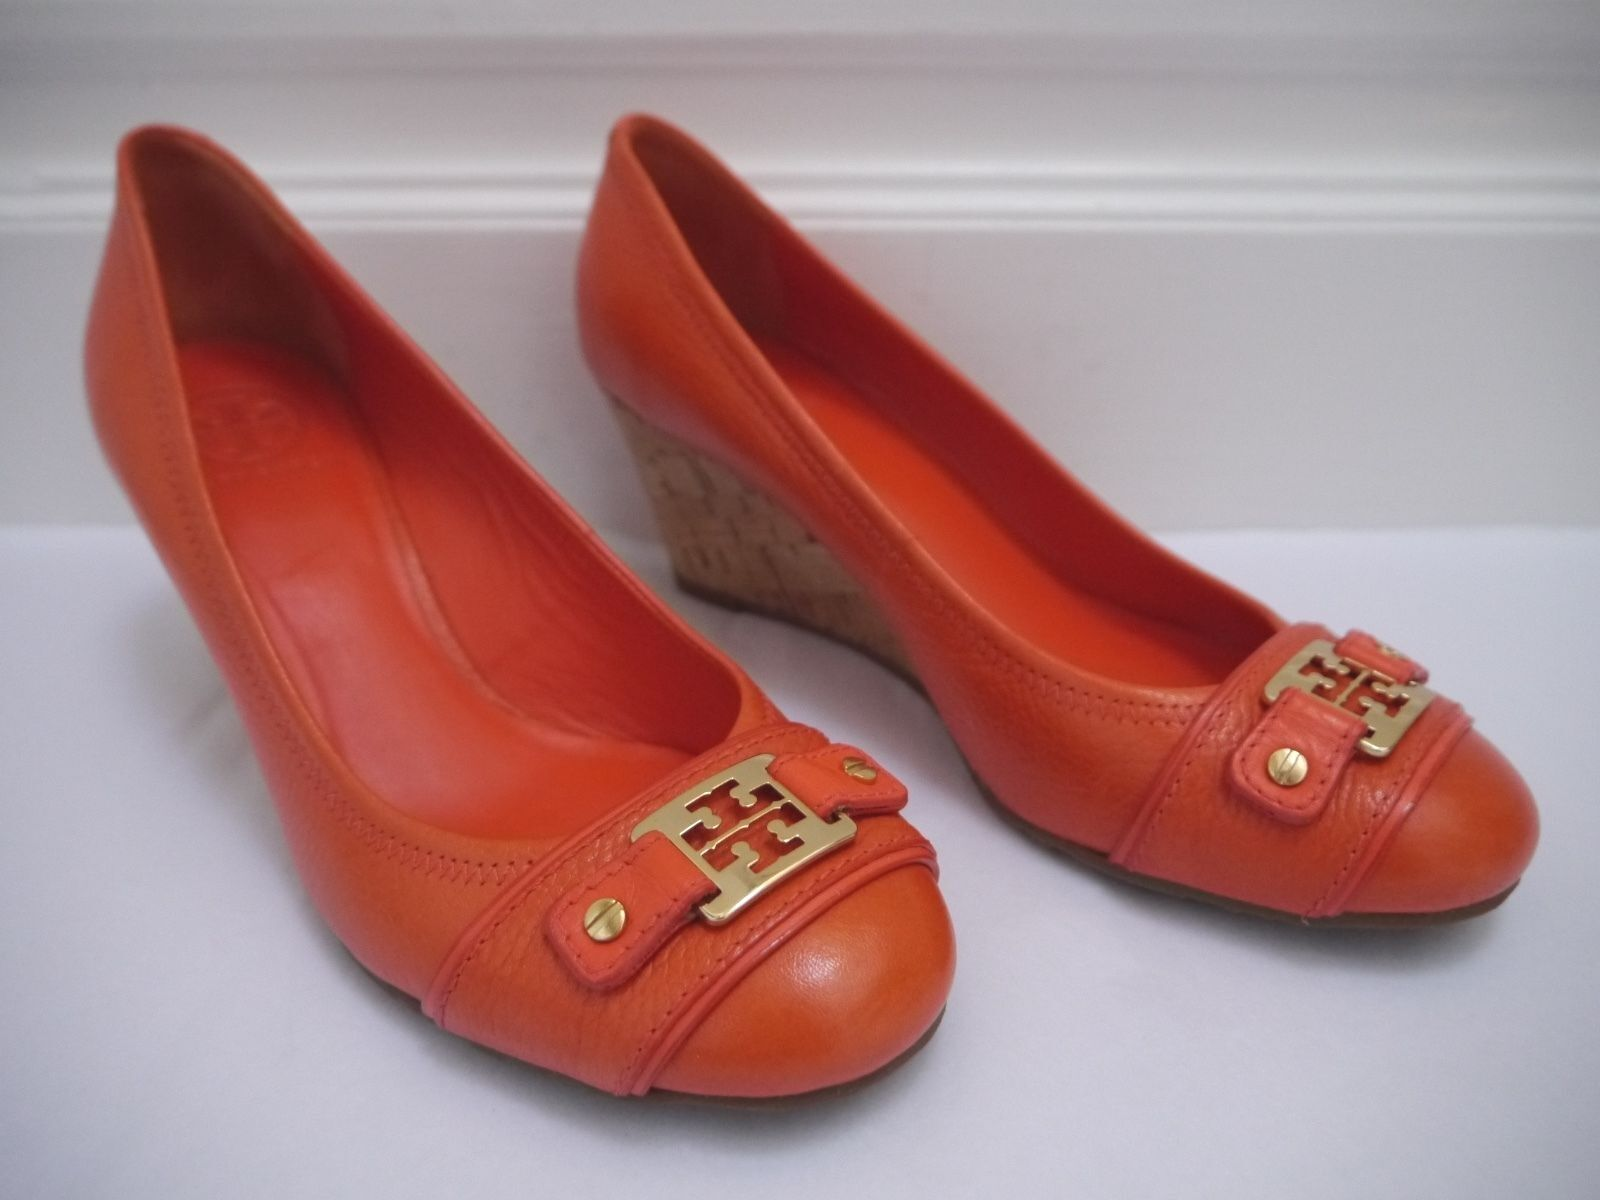 TORY BURCH  265 Natalya orange leather gold logo cork wedge heels sz 9 WORN ONCE